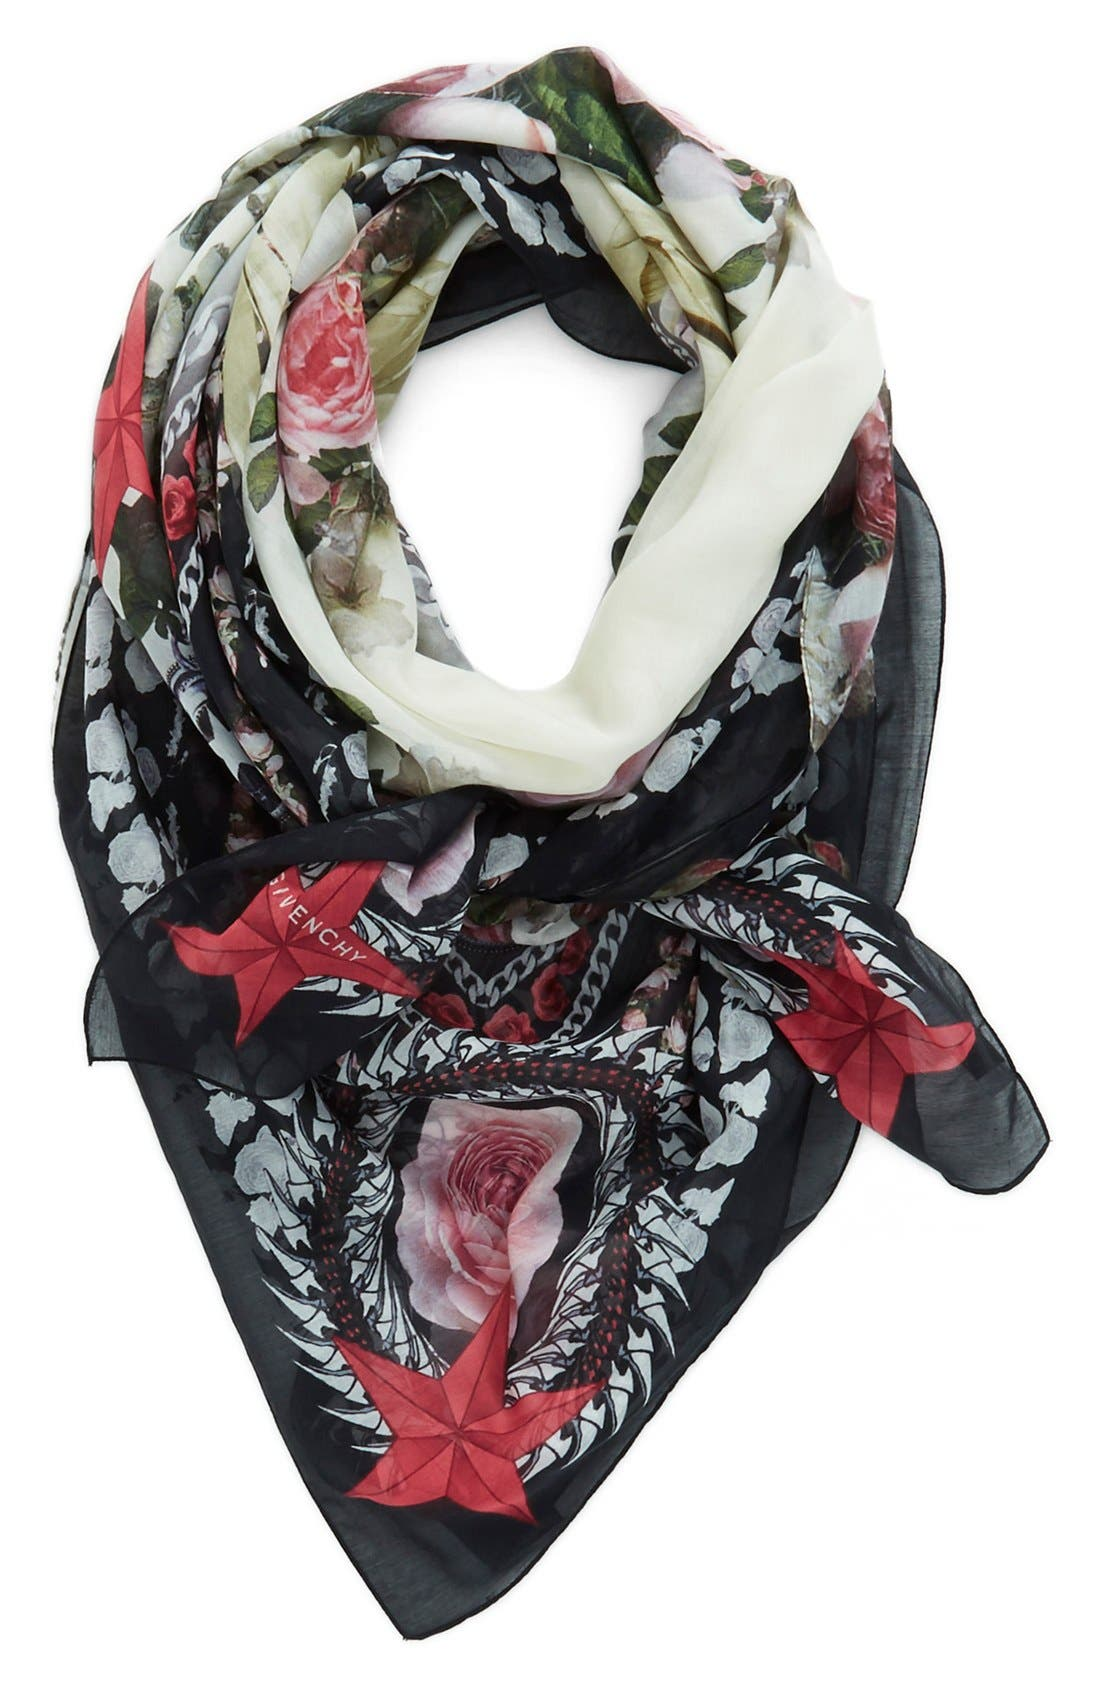 Alternate Image 1 Selected - Givenchy 'Paradise Flower' Print Cotton & Silk Scarf